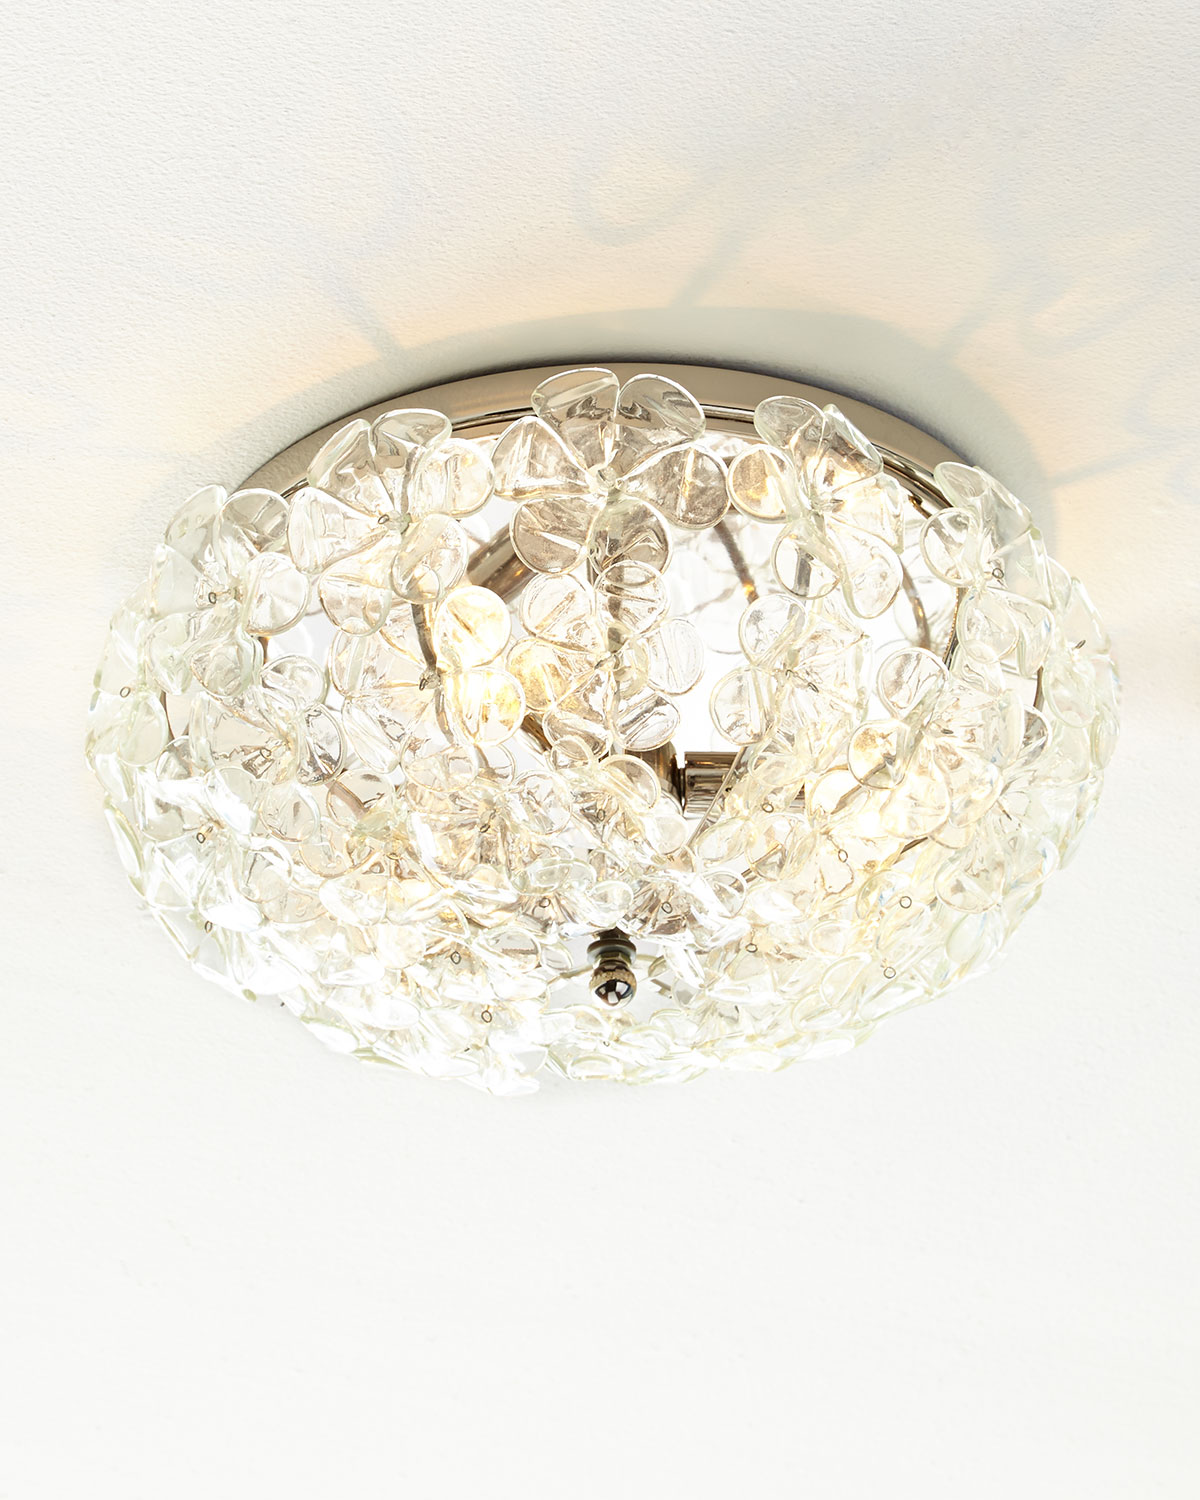 Glass ceiling light fixture neiman marcus glass flower 17 flush mount ceiling fixture arubaitofo Gallery